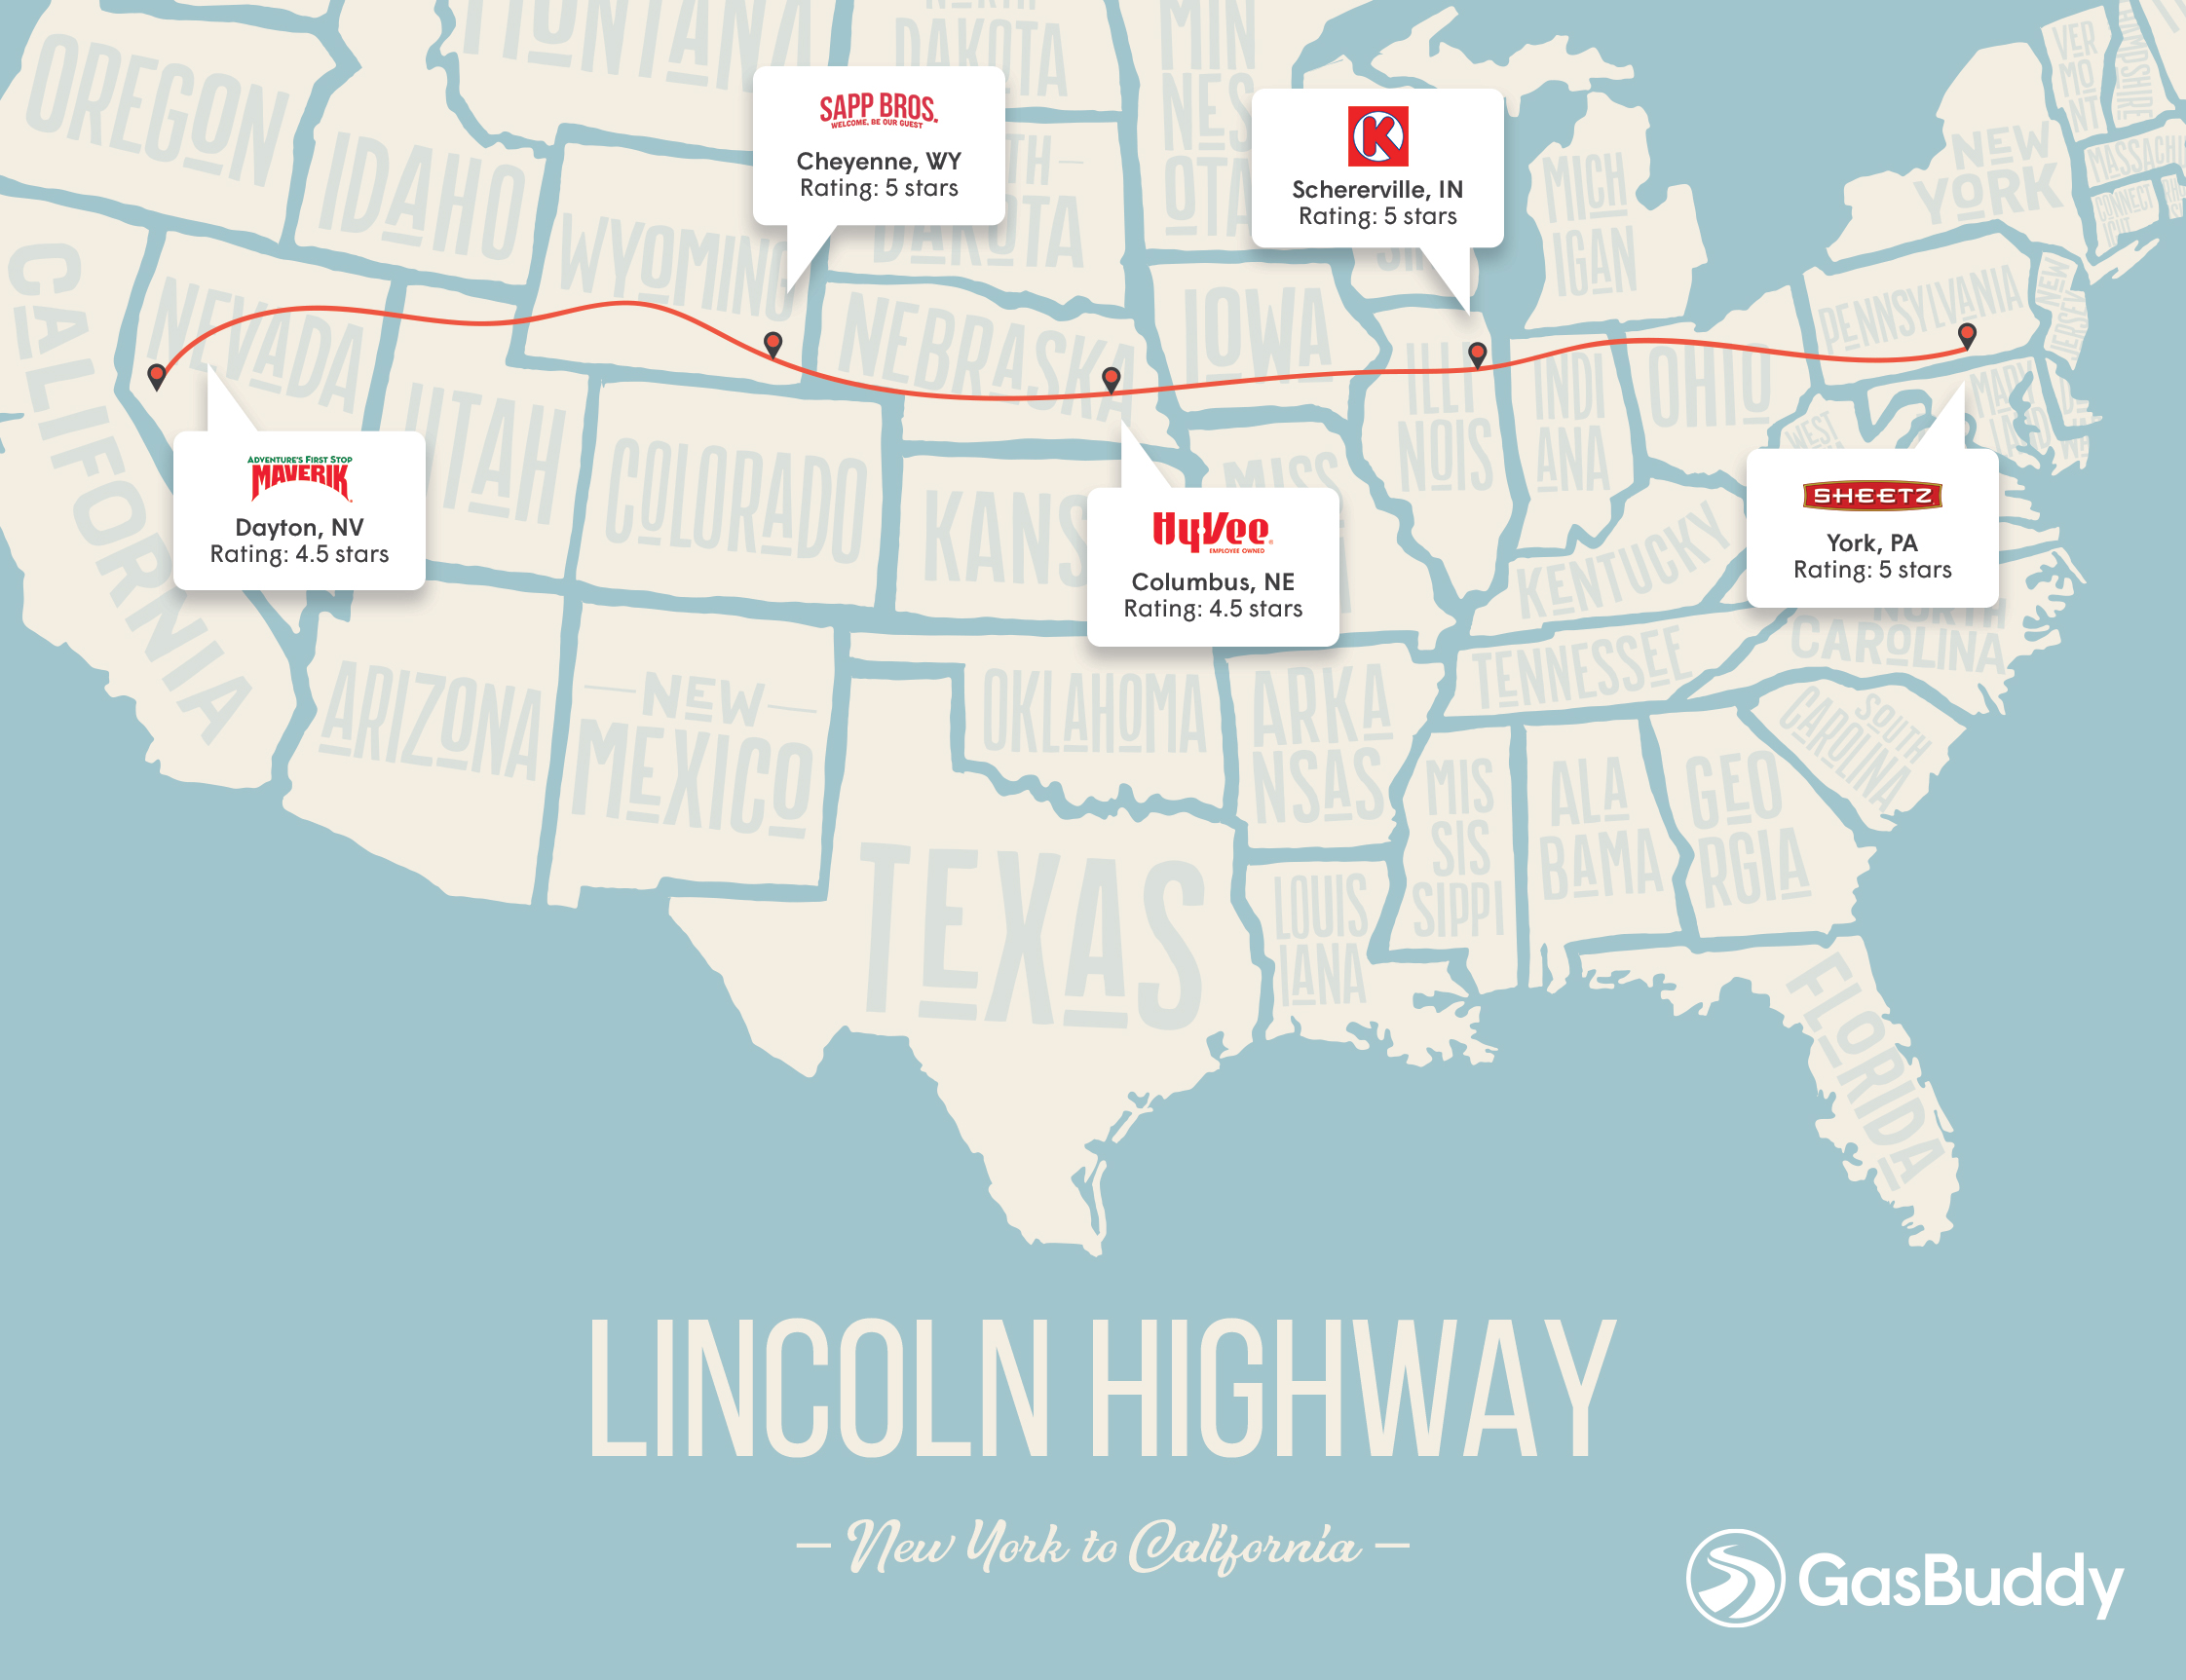 Shell Gas Station Lincoln Ne >> GasBuddy Reveals the Top 5 Pit Stops on the 5 Most Popular US Road Trip Routes - GasBuddy.com